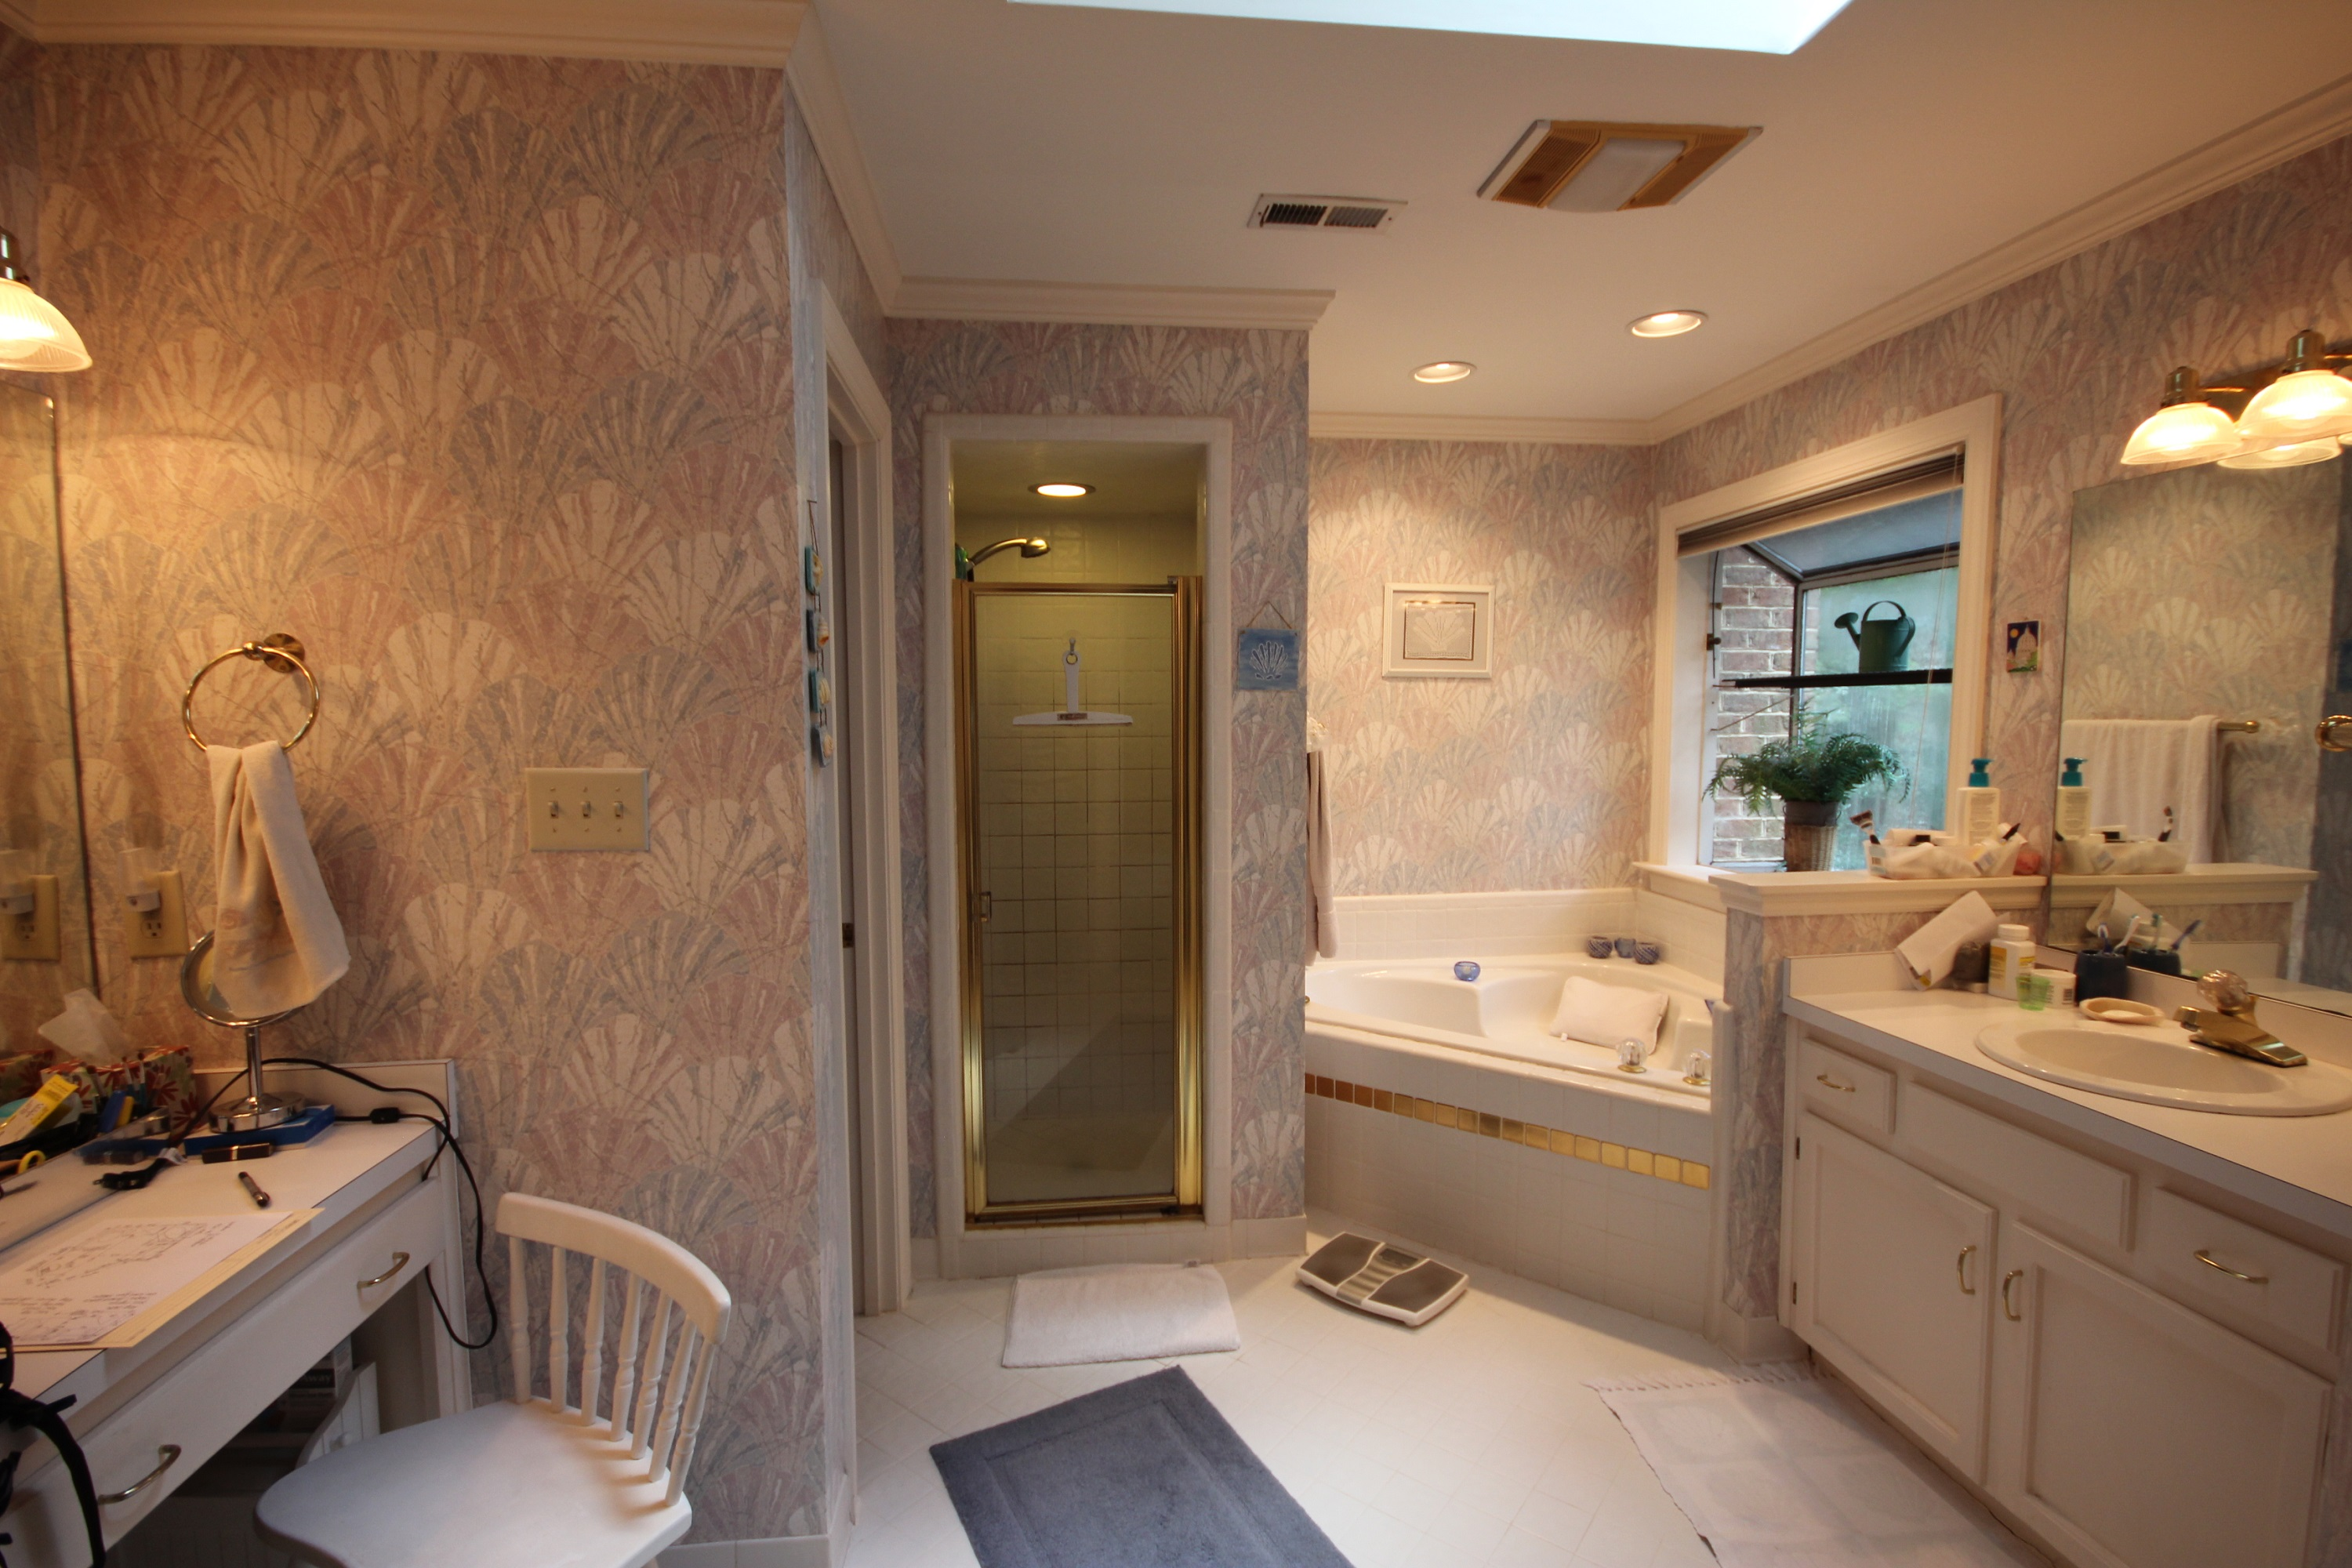 Bathroom Remodeling Cary Nc Design before & after bathroom remodeling images - portofino tile of cary nc